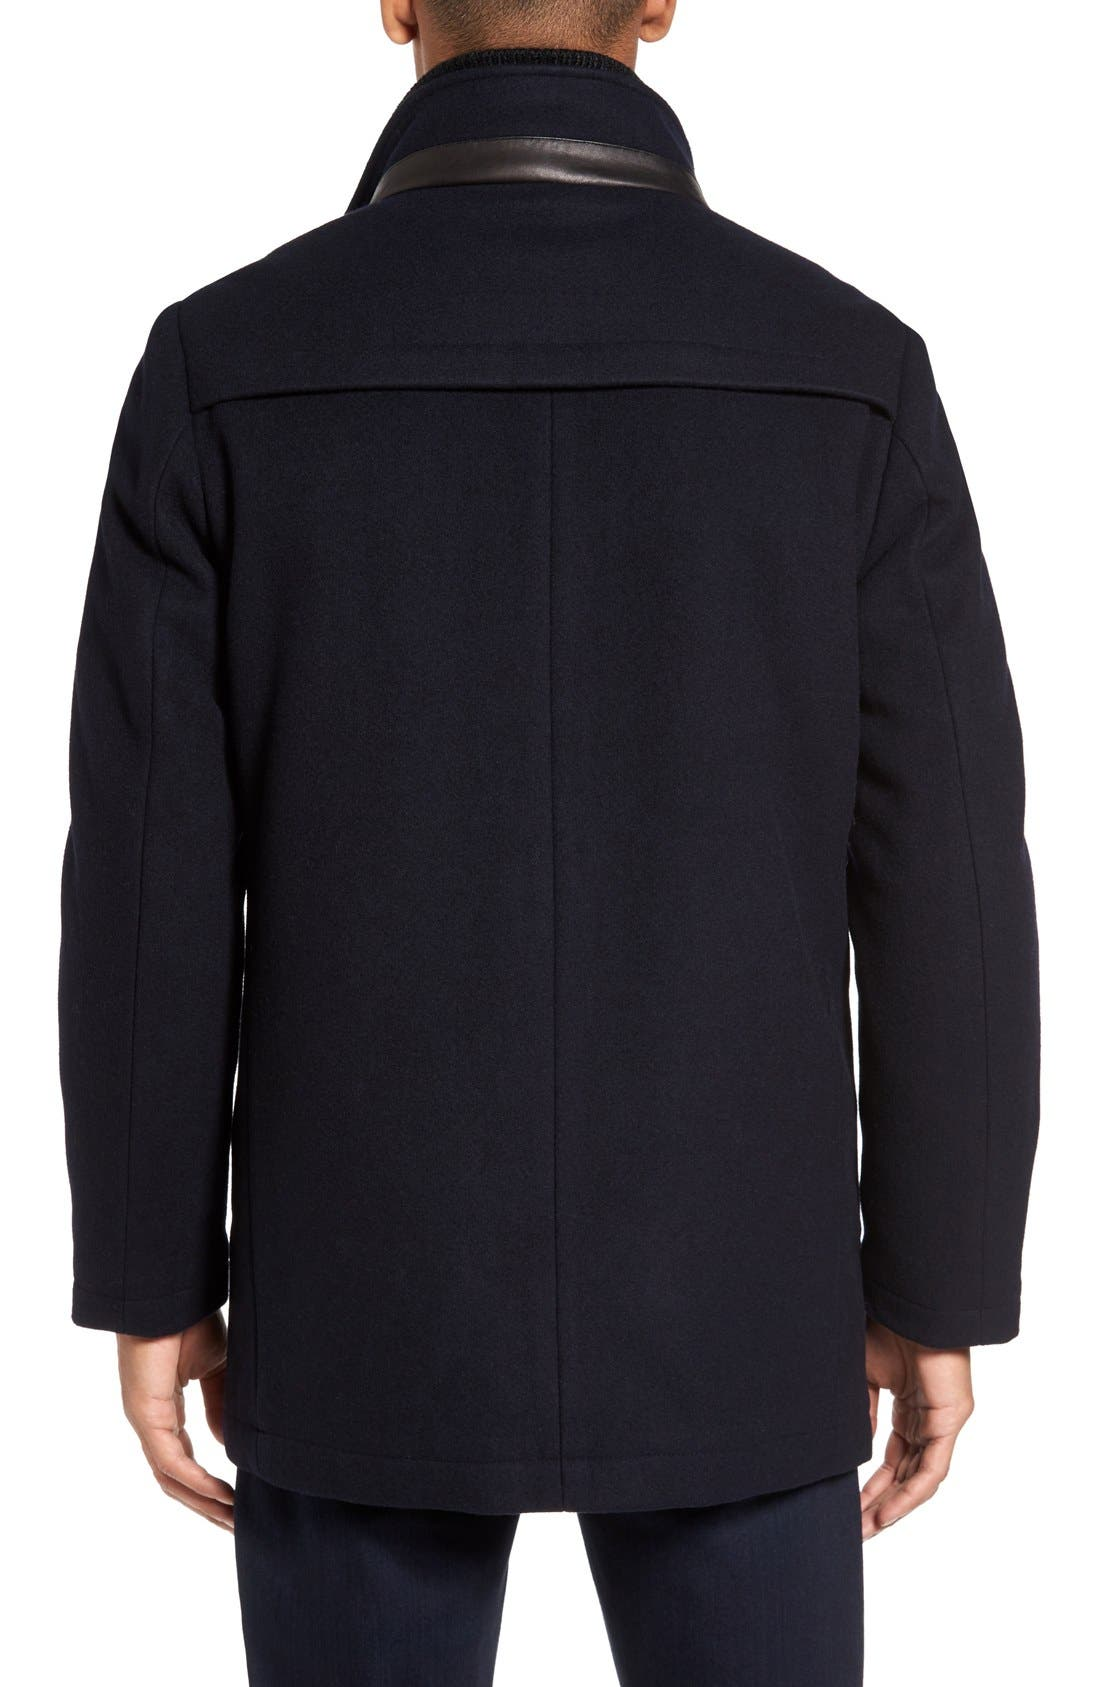 Alternate Image 2  - Vince Camuto Classic Wool Blend Car Coat with Inset Bib